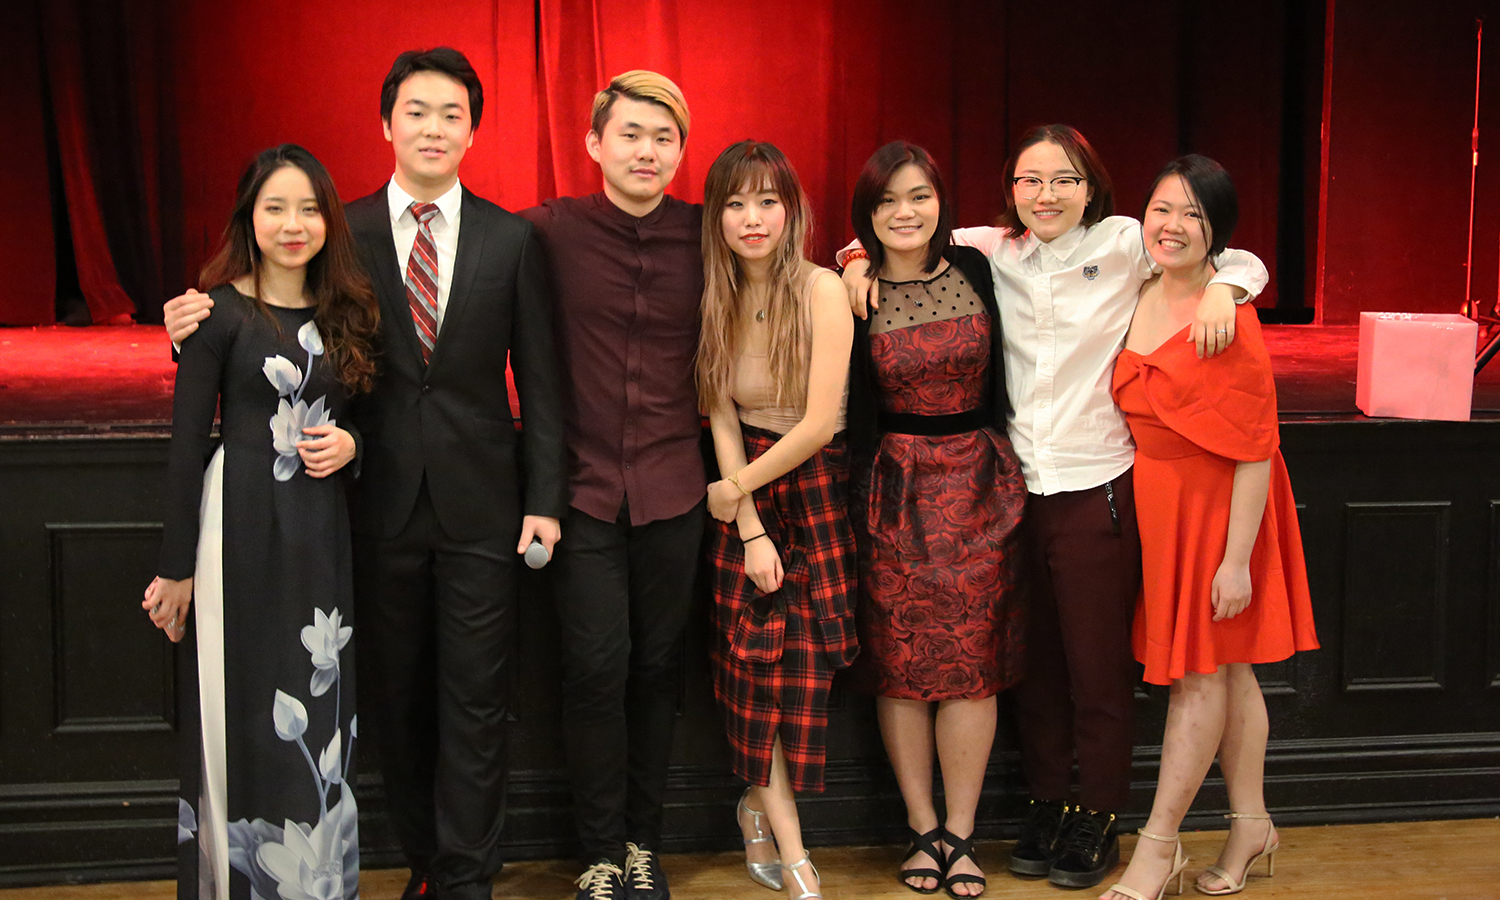 Asian Student Union board members pose for a photo following the Lunar New Year dinner celebrating the end of the Year of the Rooster and welcoming the Year of the Dog.